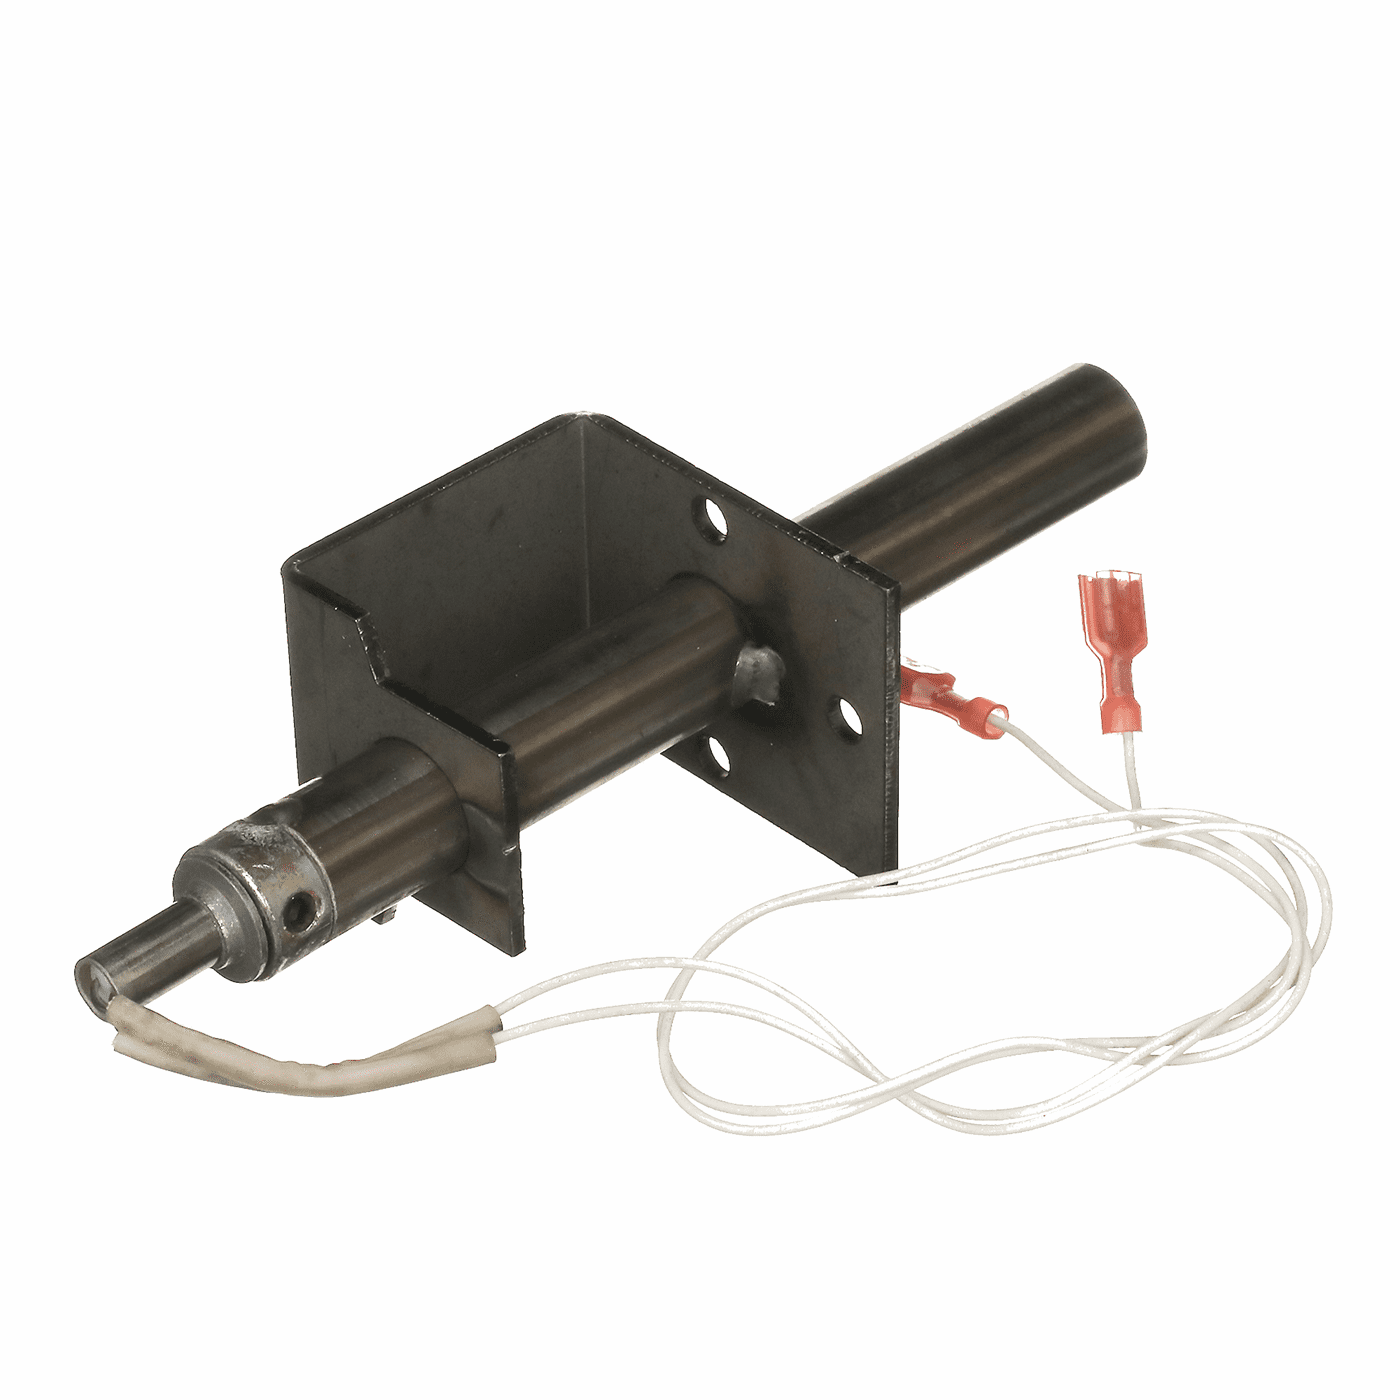 Englander Igniter For Smart Stoves, AC-CHSS